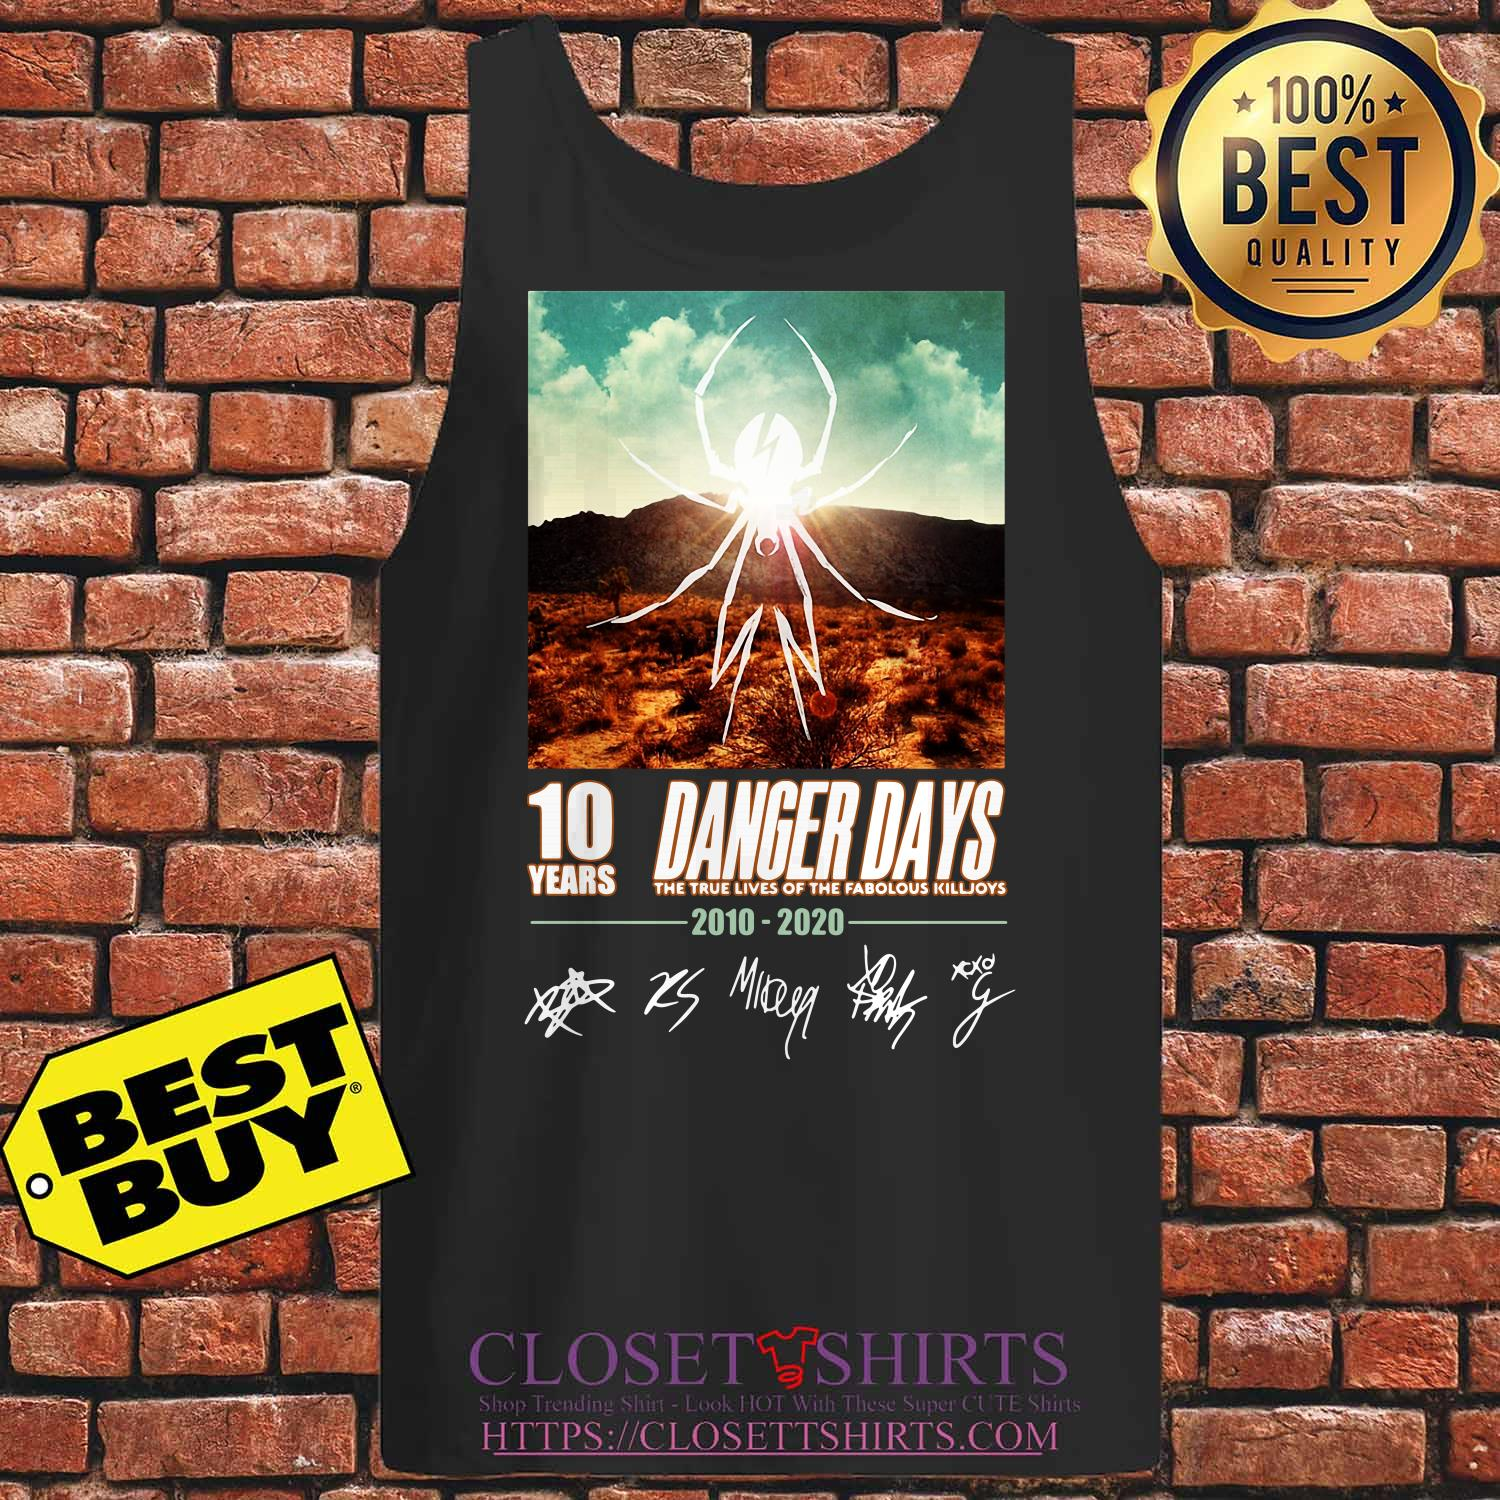 Spider 10 Years Danger Days True Lives Fabolous Killjoys 2010 2020 Signatures Tank Top